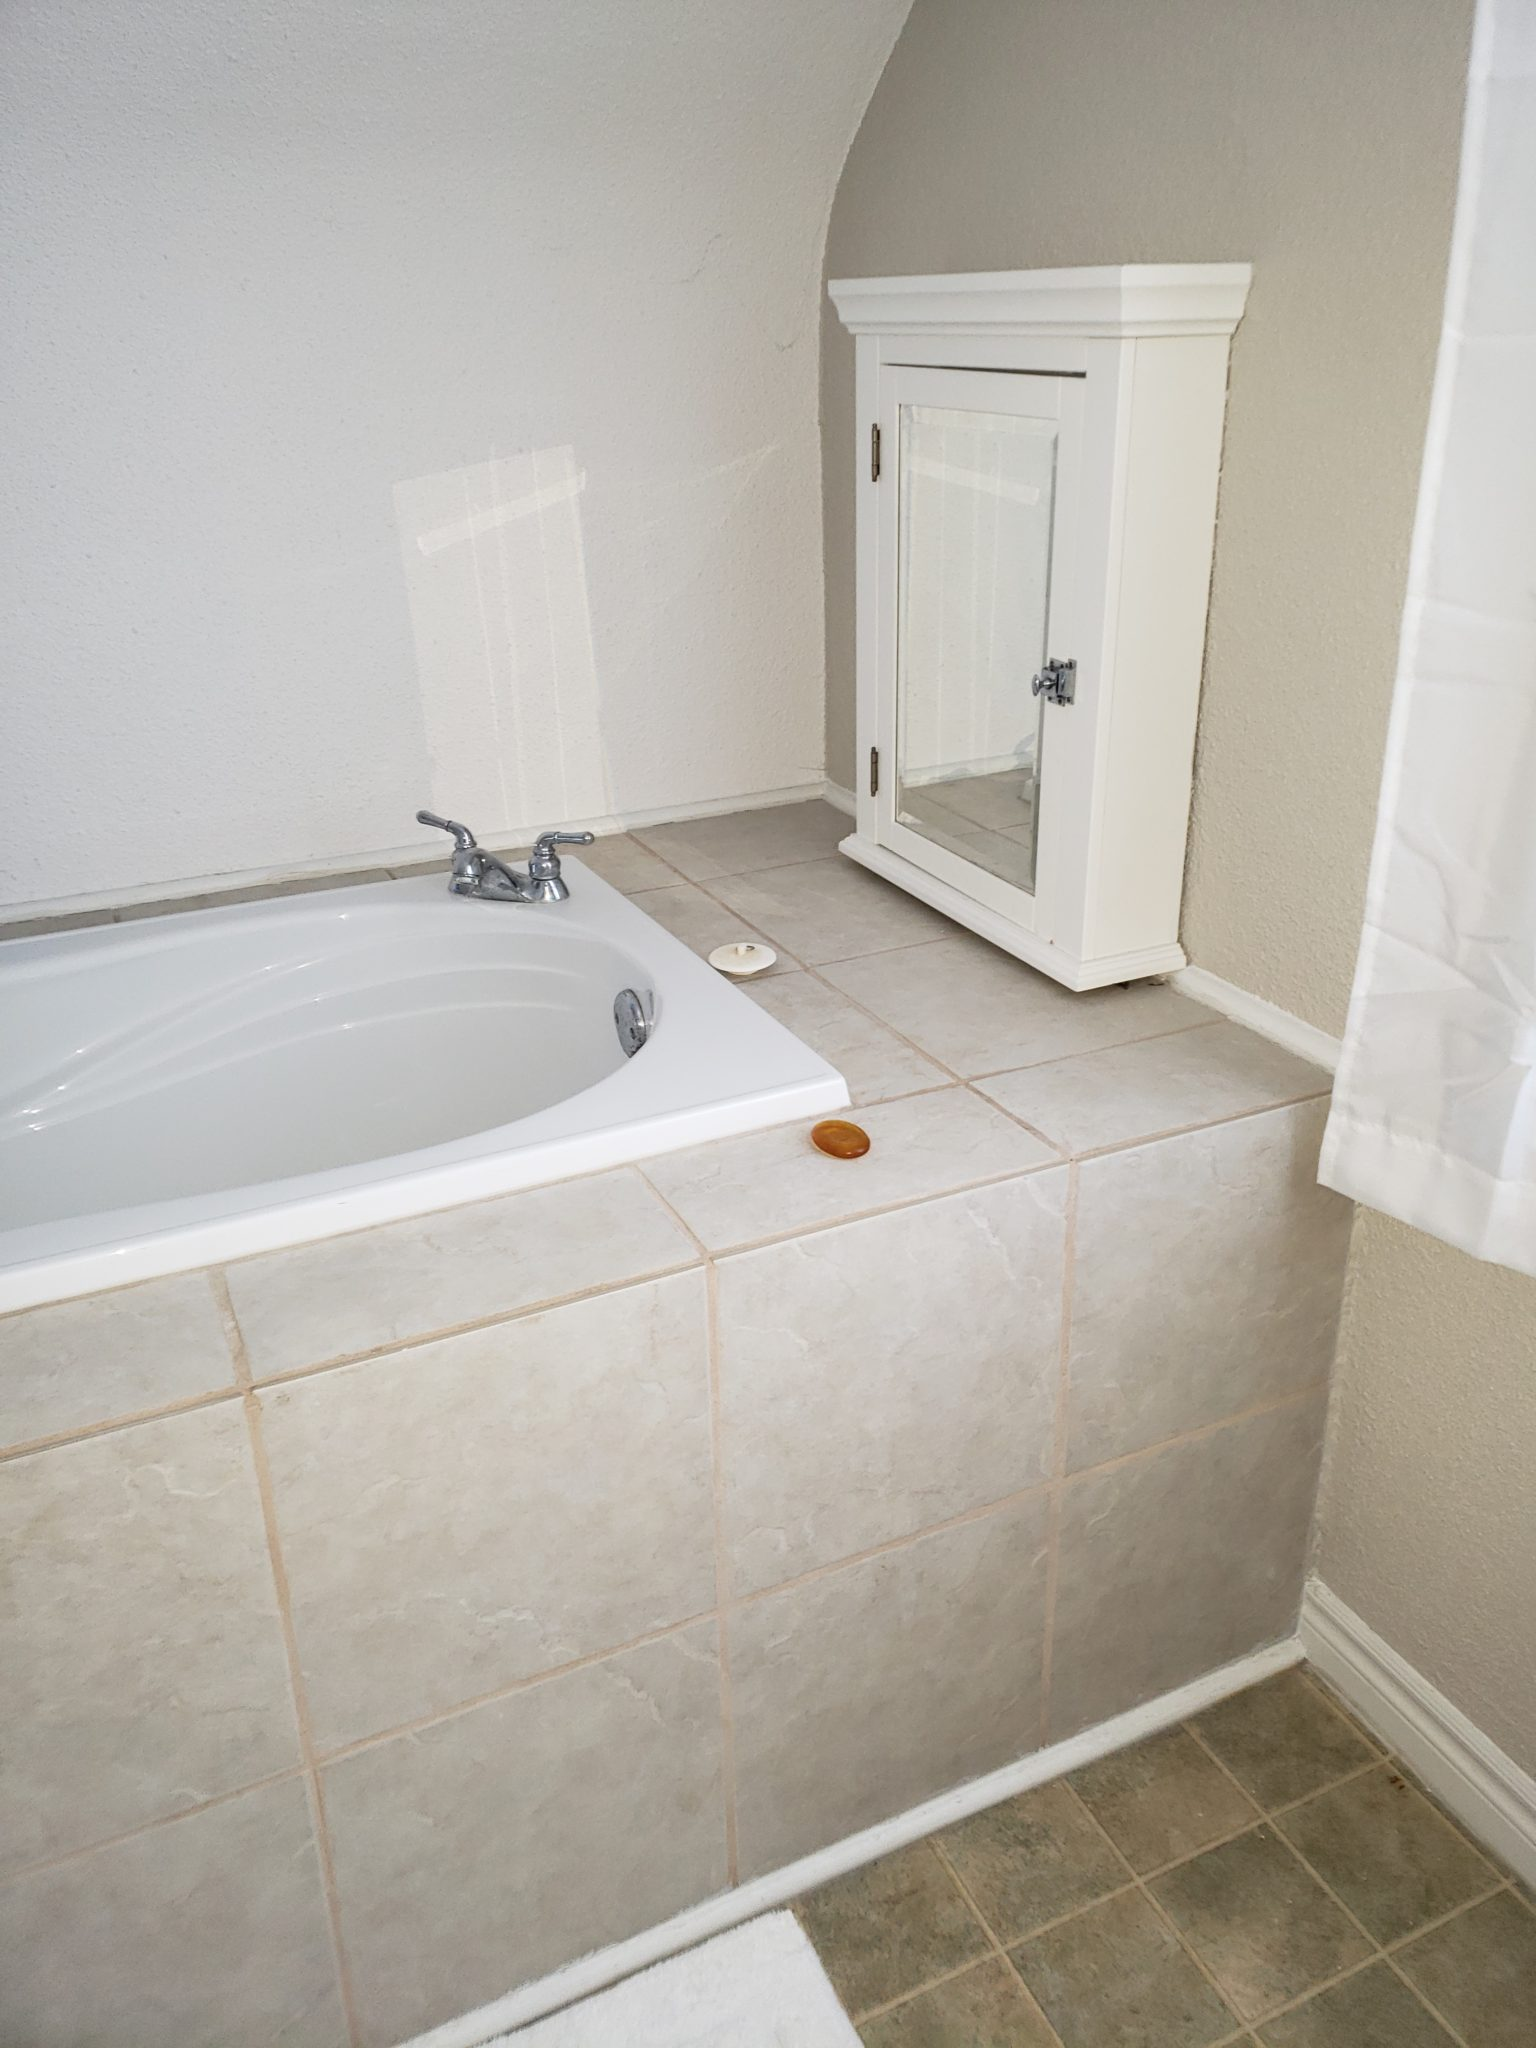 Bath area front - Before